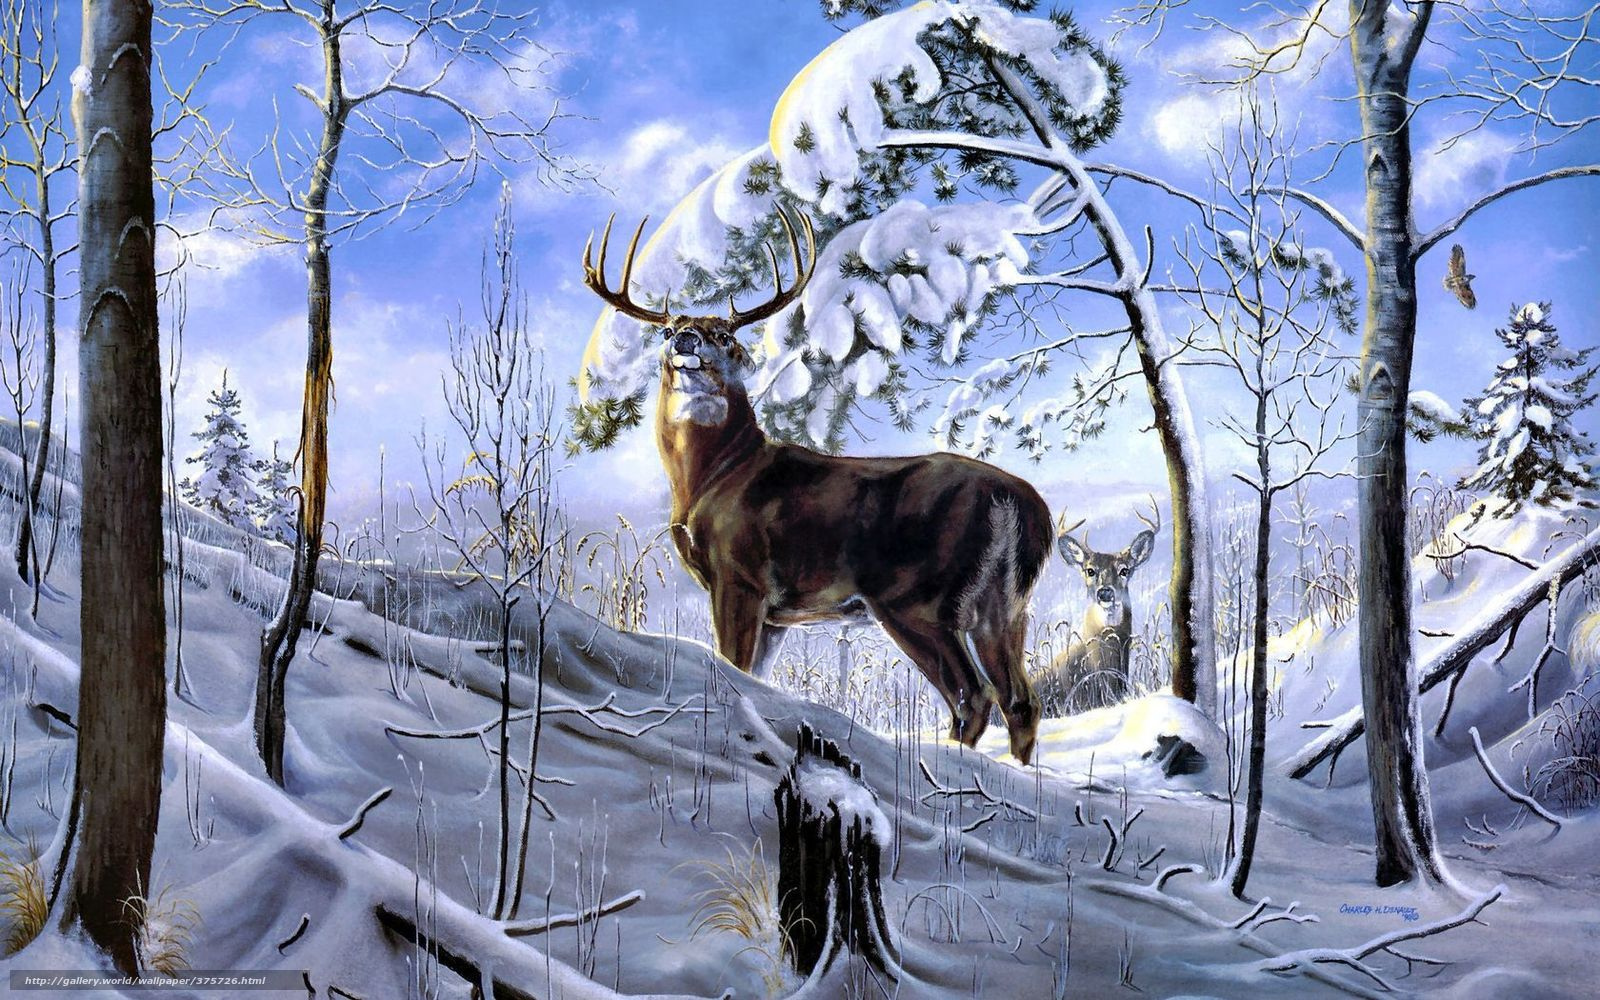 Download wallpaper Deer Winter forest snow desktop 1600x1000